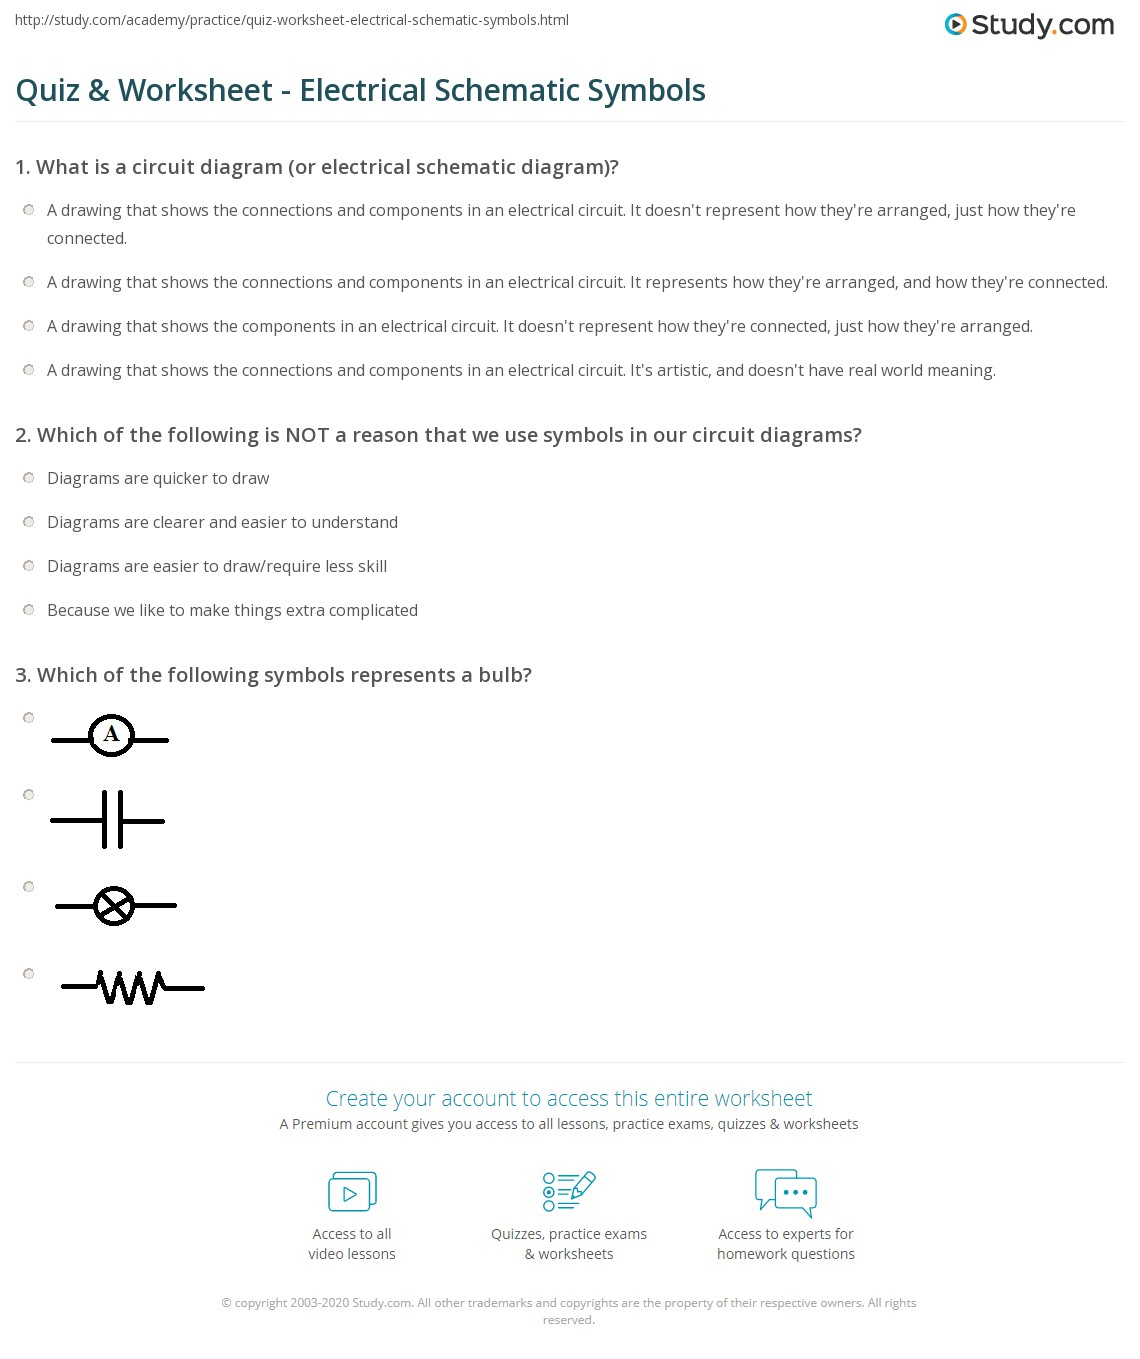 quiz worksheet electrical schematic symbols quiz & worksheet electrical schematic symbols study com wiring schematic practice at mifinder.co